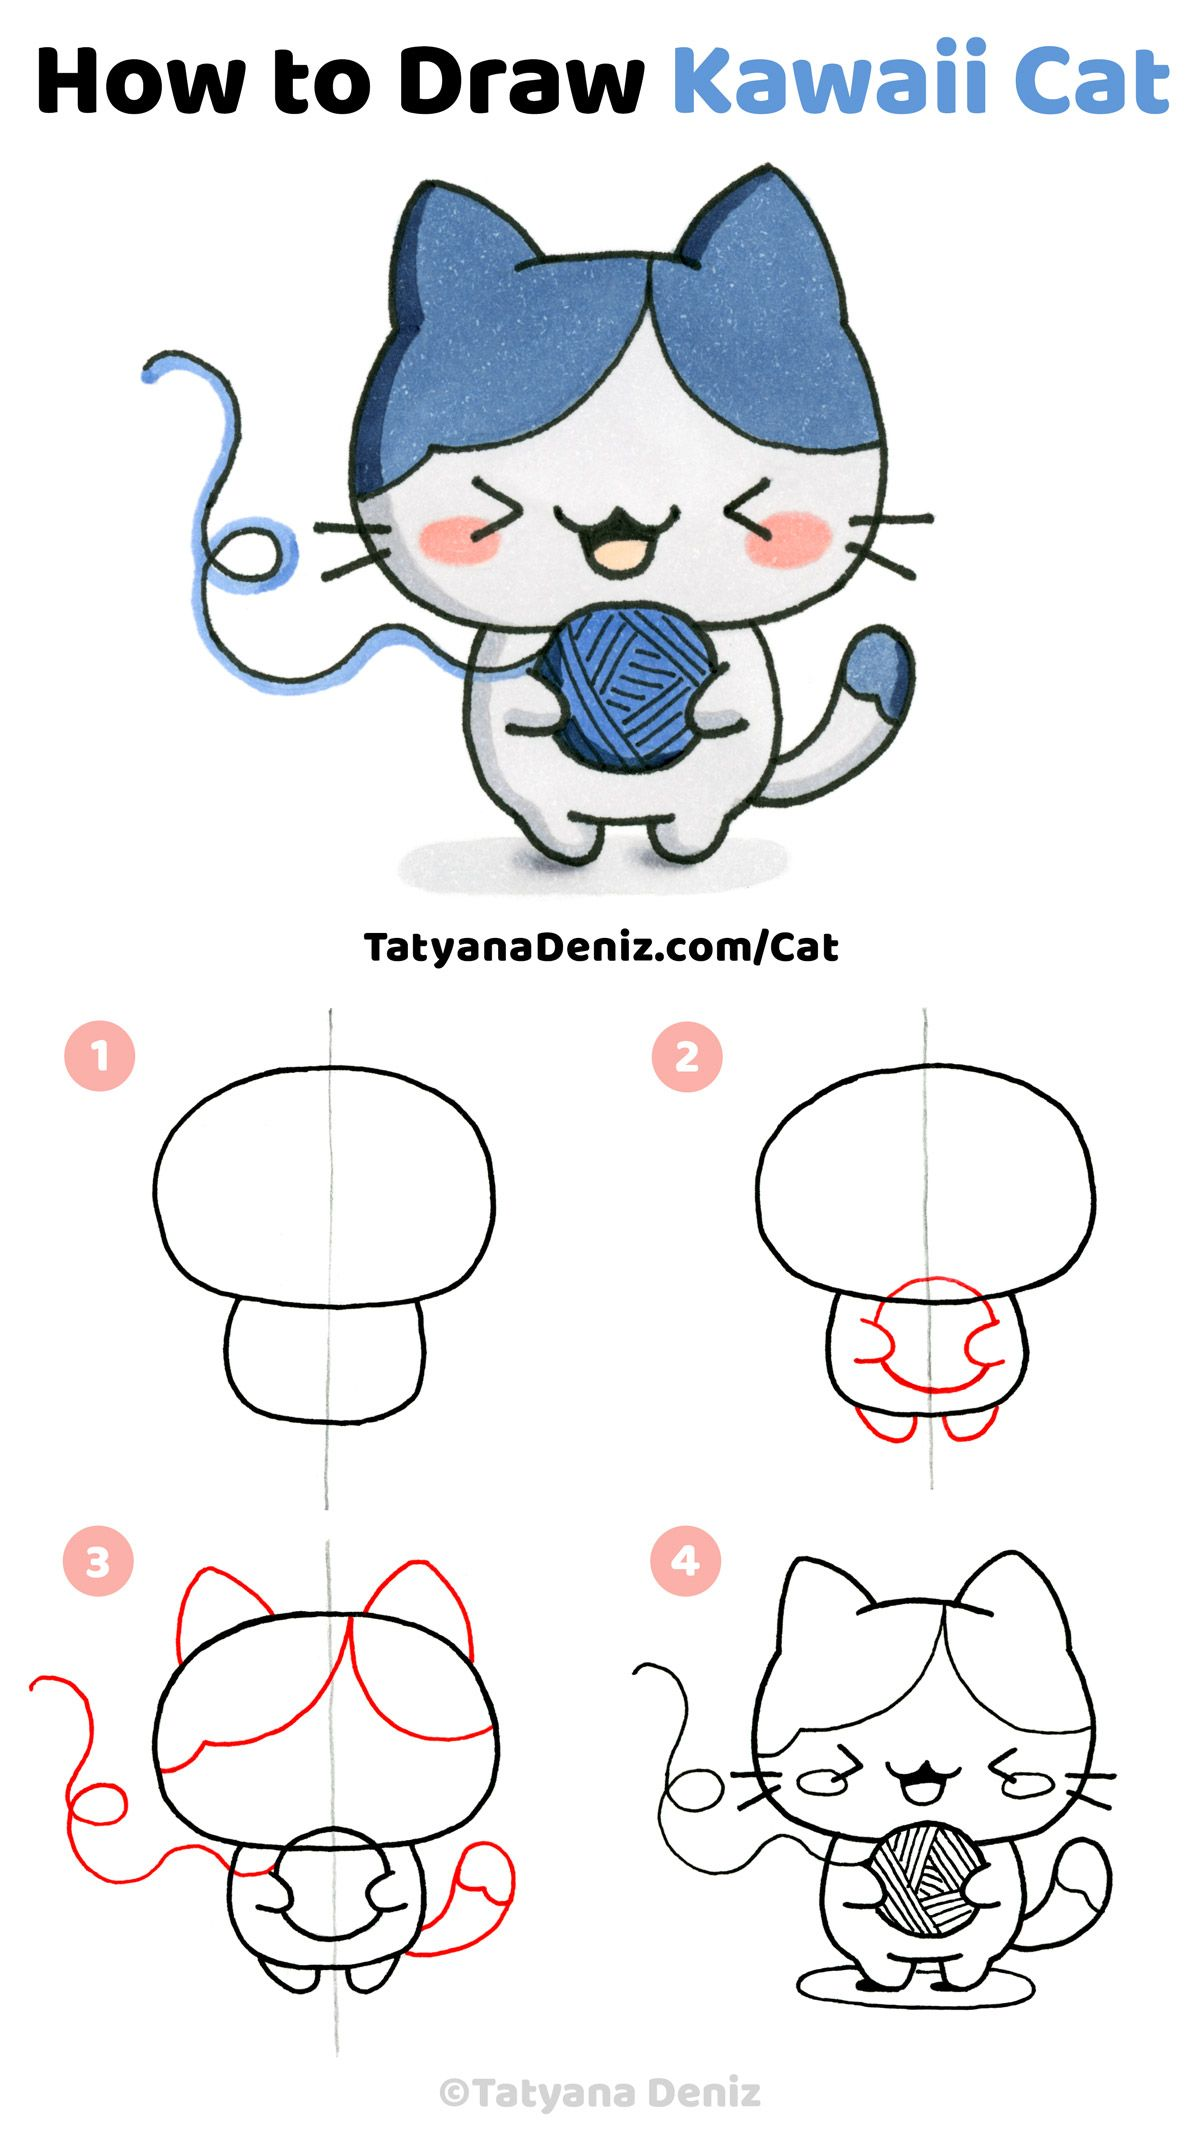 How To Draw Kawaii Cat Step By Step Drawing Tutorial Kawaii Cat Drawing Cat Drawing Tutorial Simple Cat Drawing